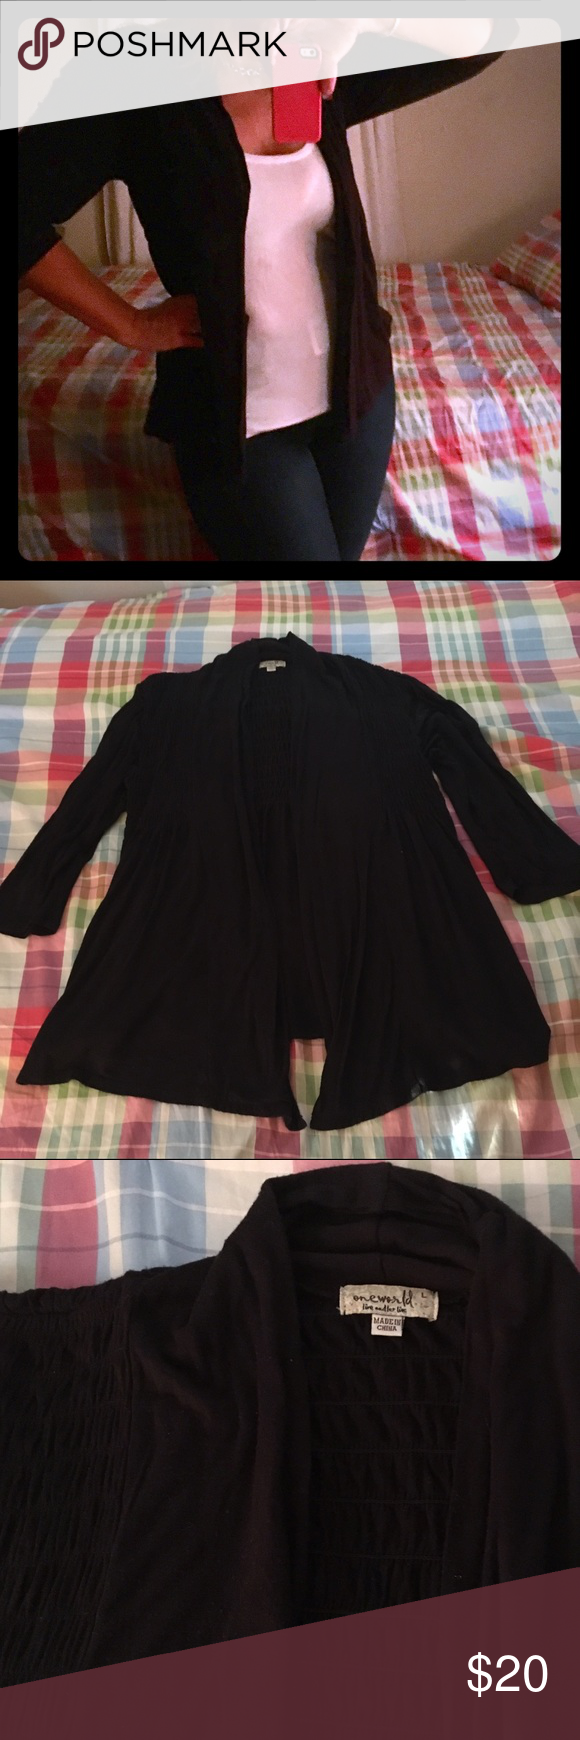 One World Black Elasticized Open Cardigan Super cute and flattering open black knit cardigan. Elasticized top and draped open front makes for a flattering fit. Excellent condition, only worn a time or two. Check out my other listings to bundle and save 25% 😎! ONE WORLD Sweaters Cardigans